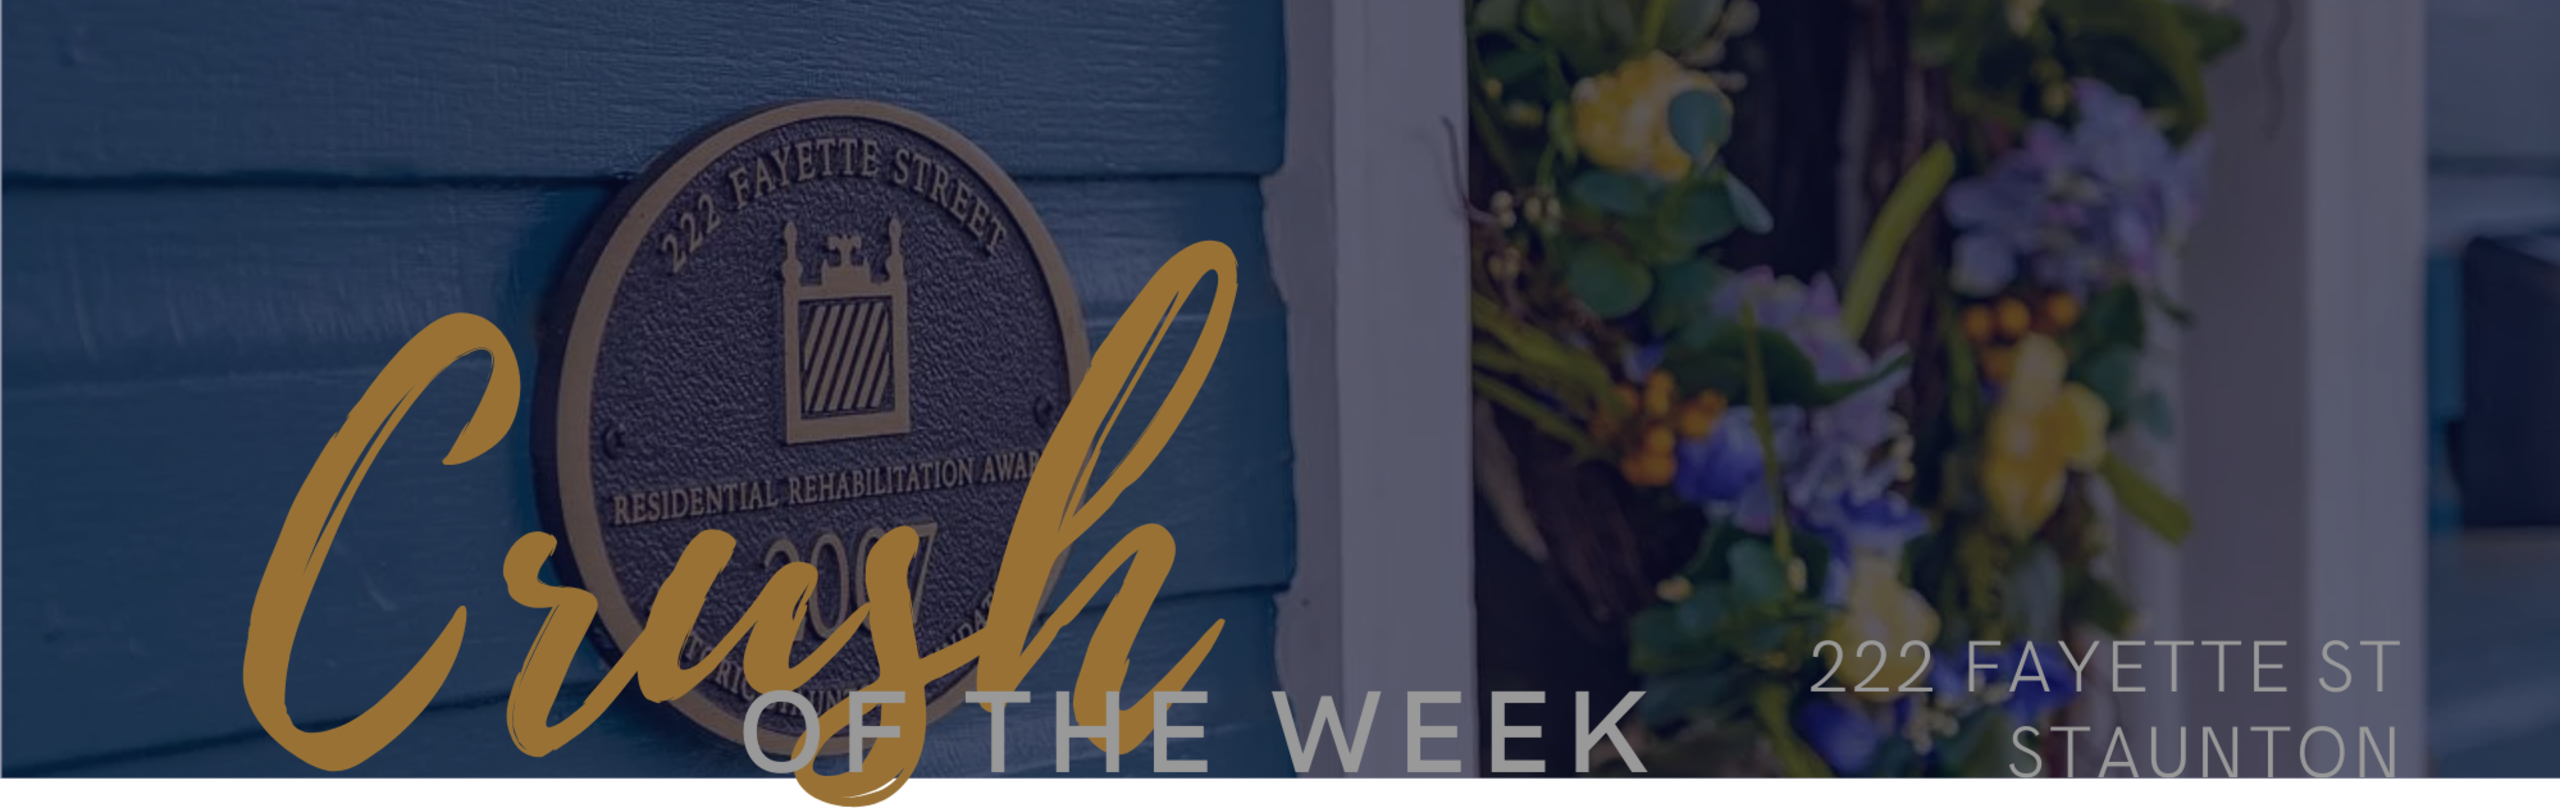 Crush of the Week – 222 Fayette St